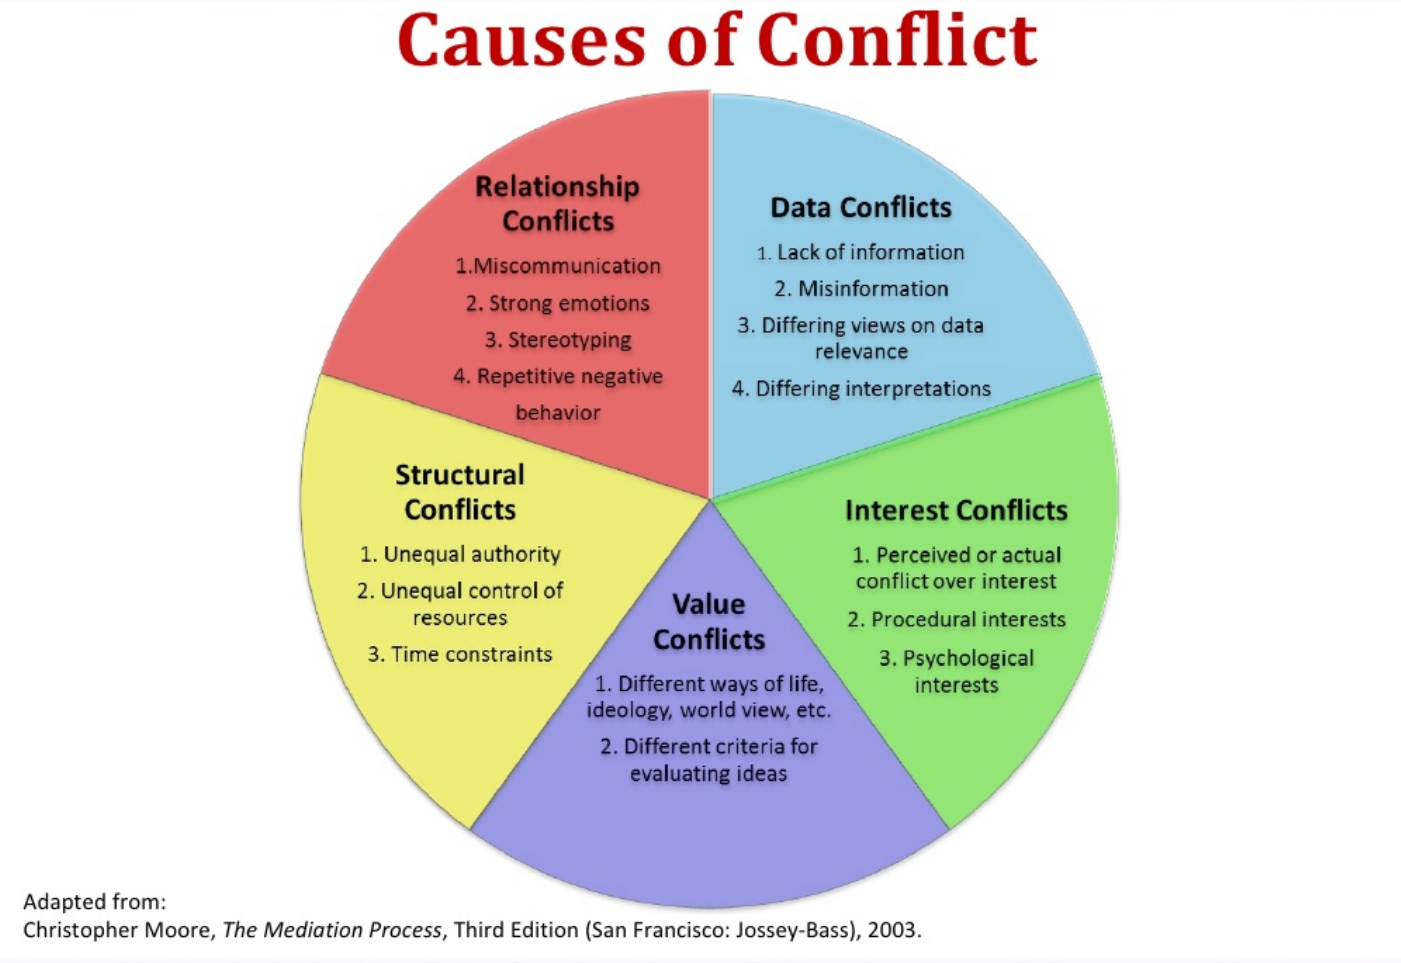 Christopher Moore's 5 Sources of Conflict